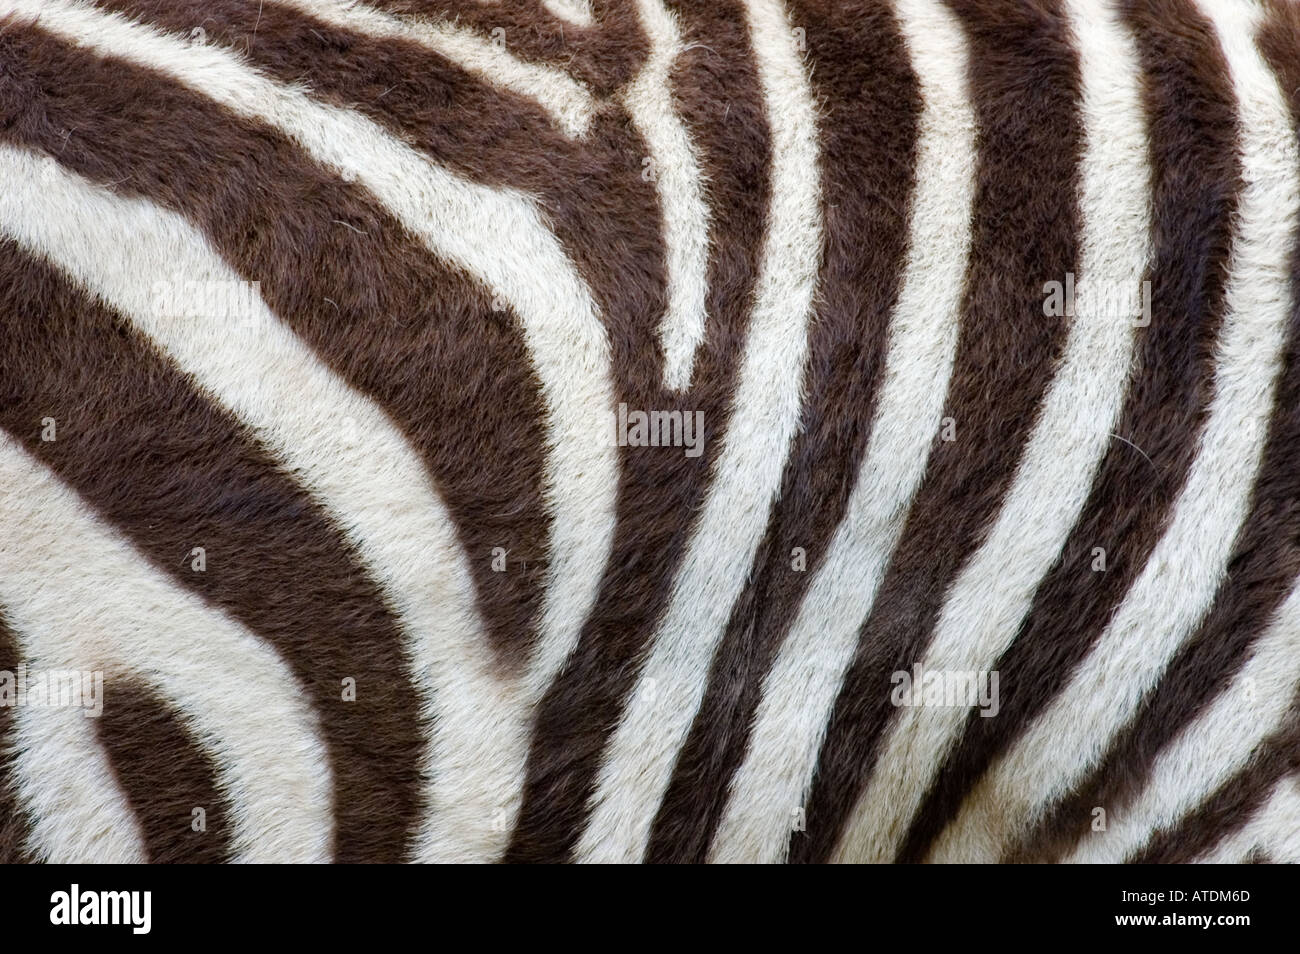 Zebra stripes - Stock Image